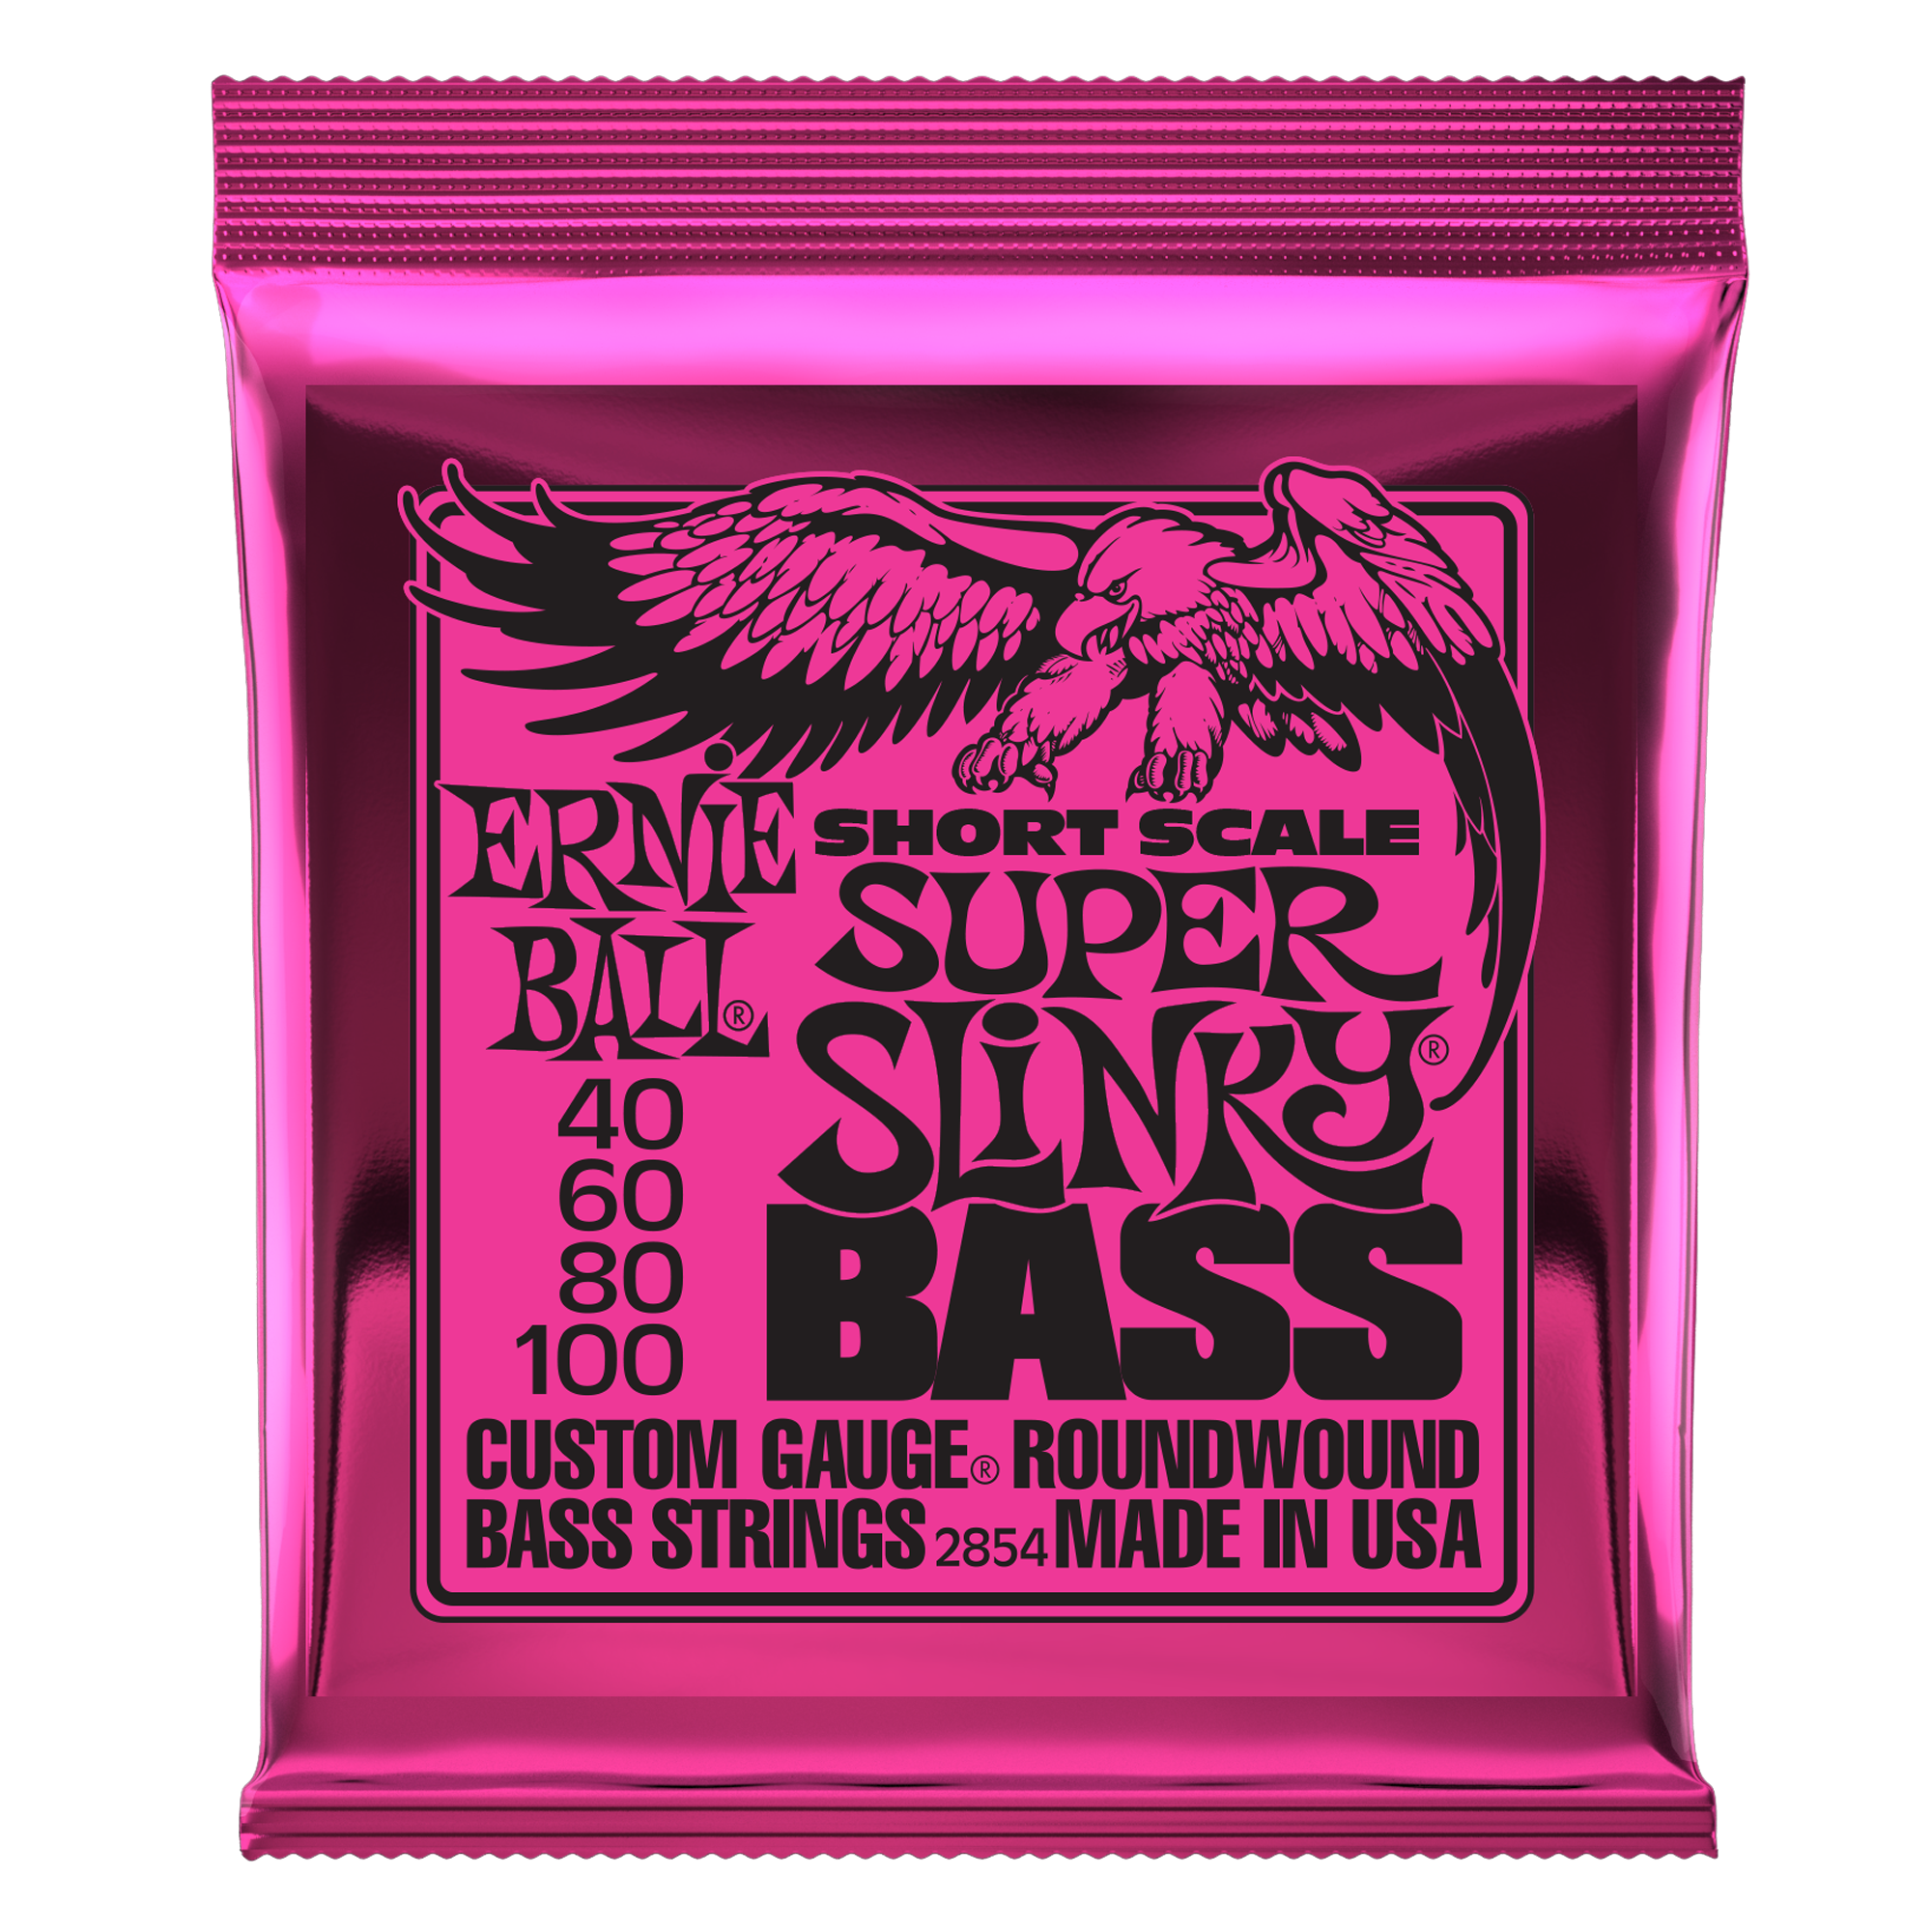 Ernie Ball Short Scale Super Slinky Bass Strings